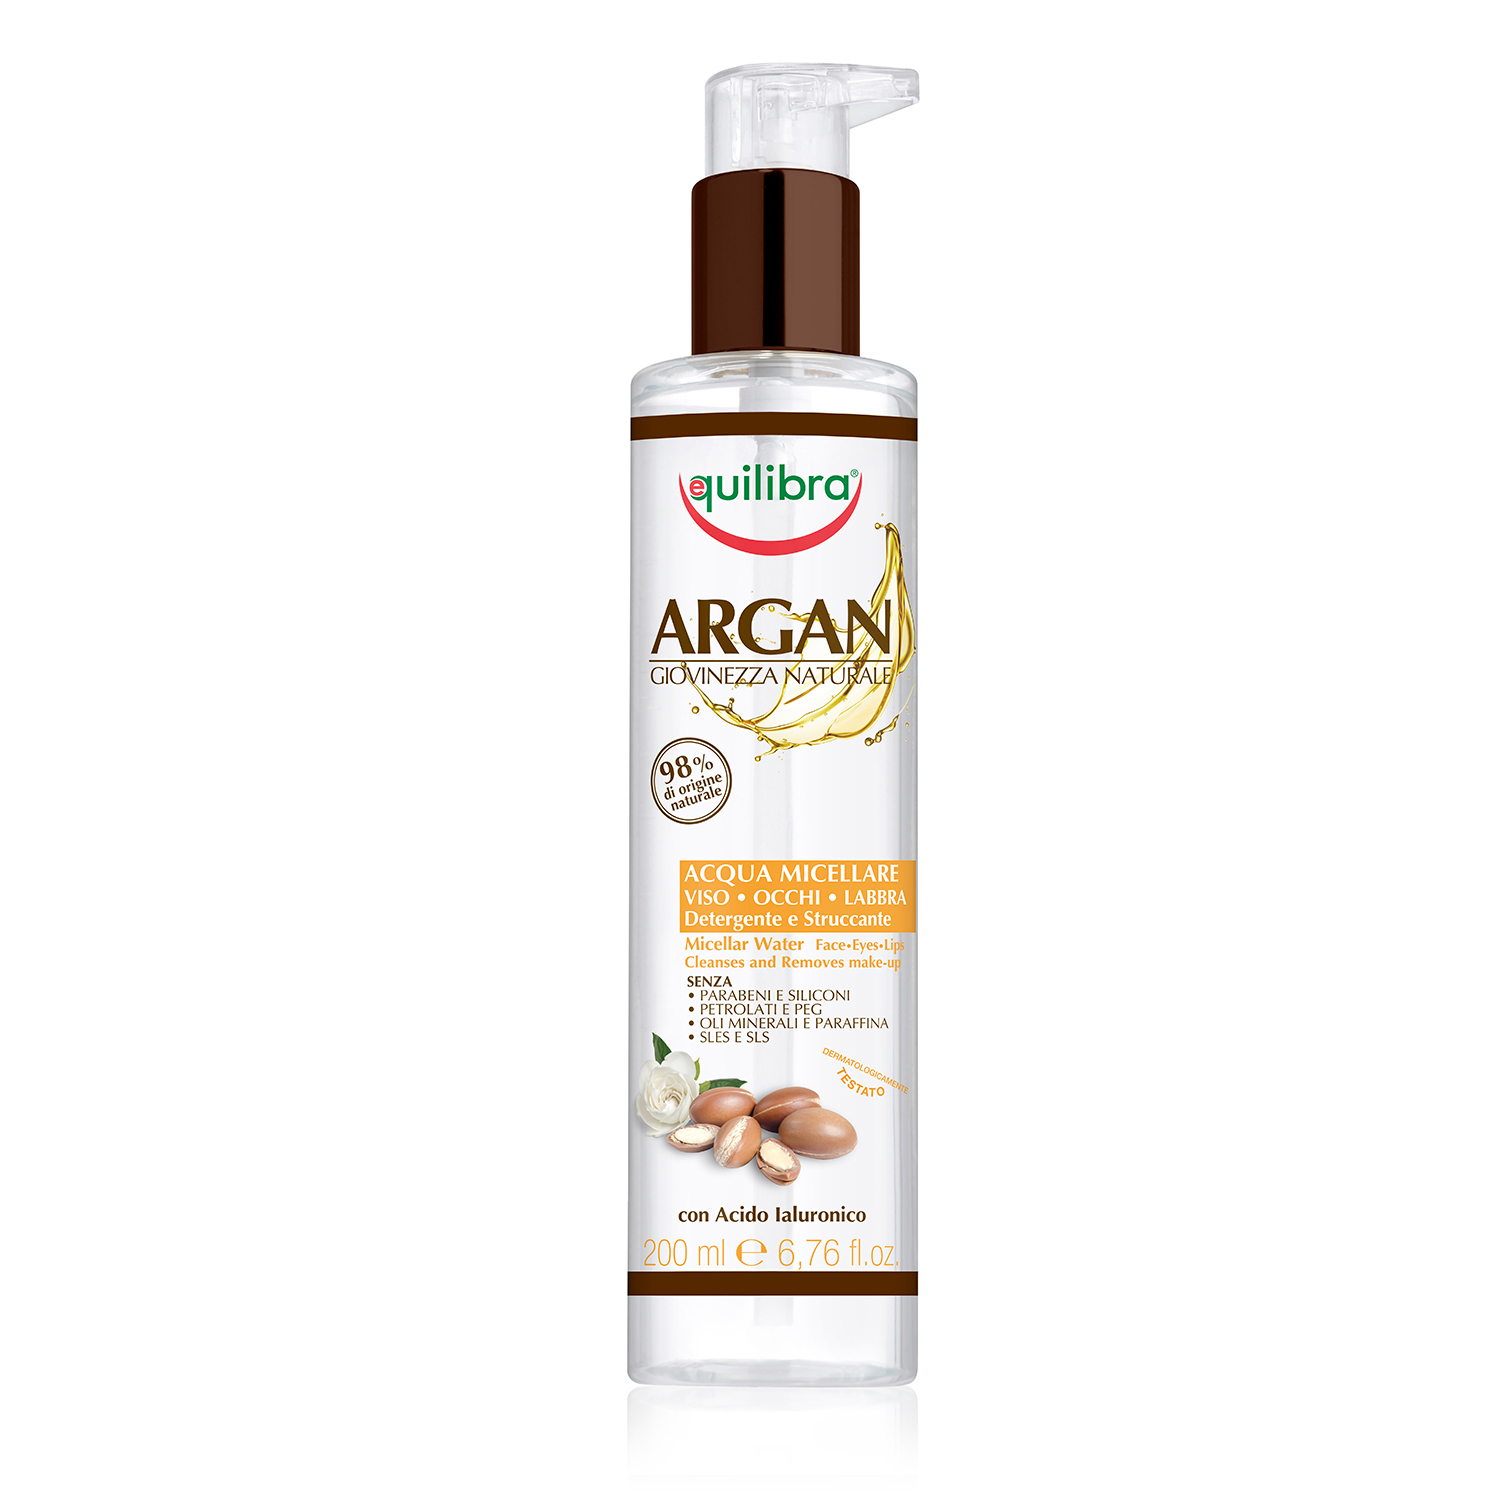 Equilibra  Argan acqua micellare 200 ml